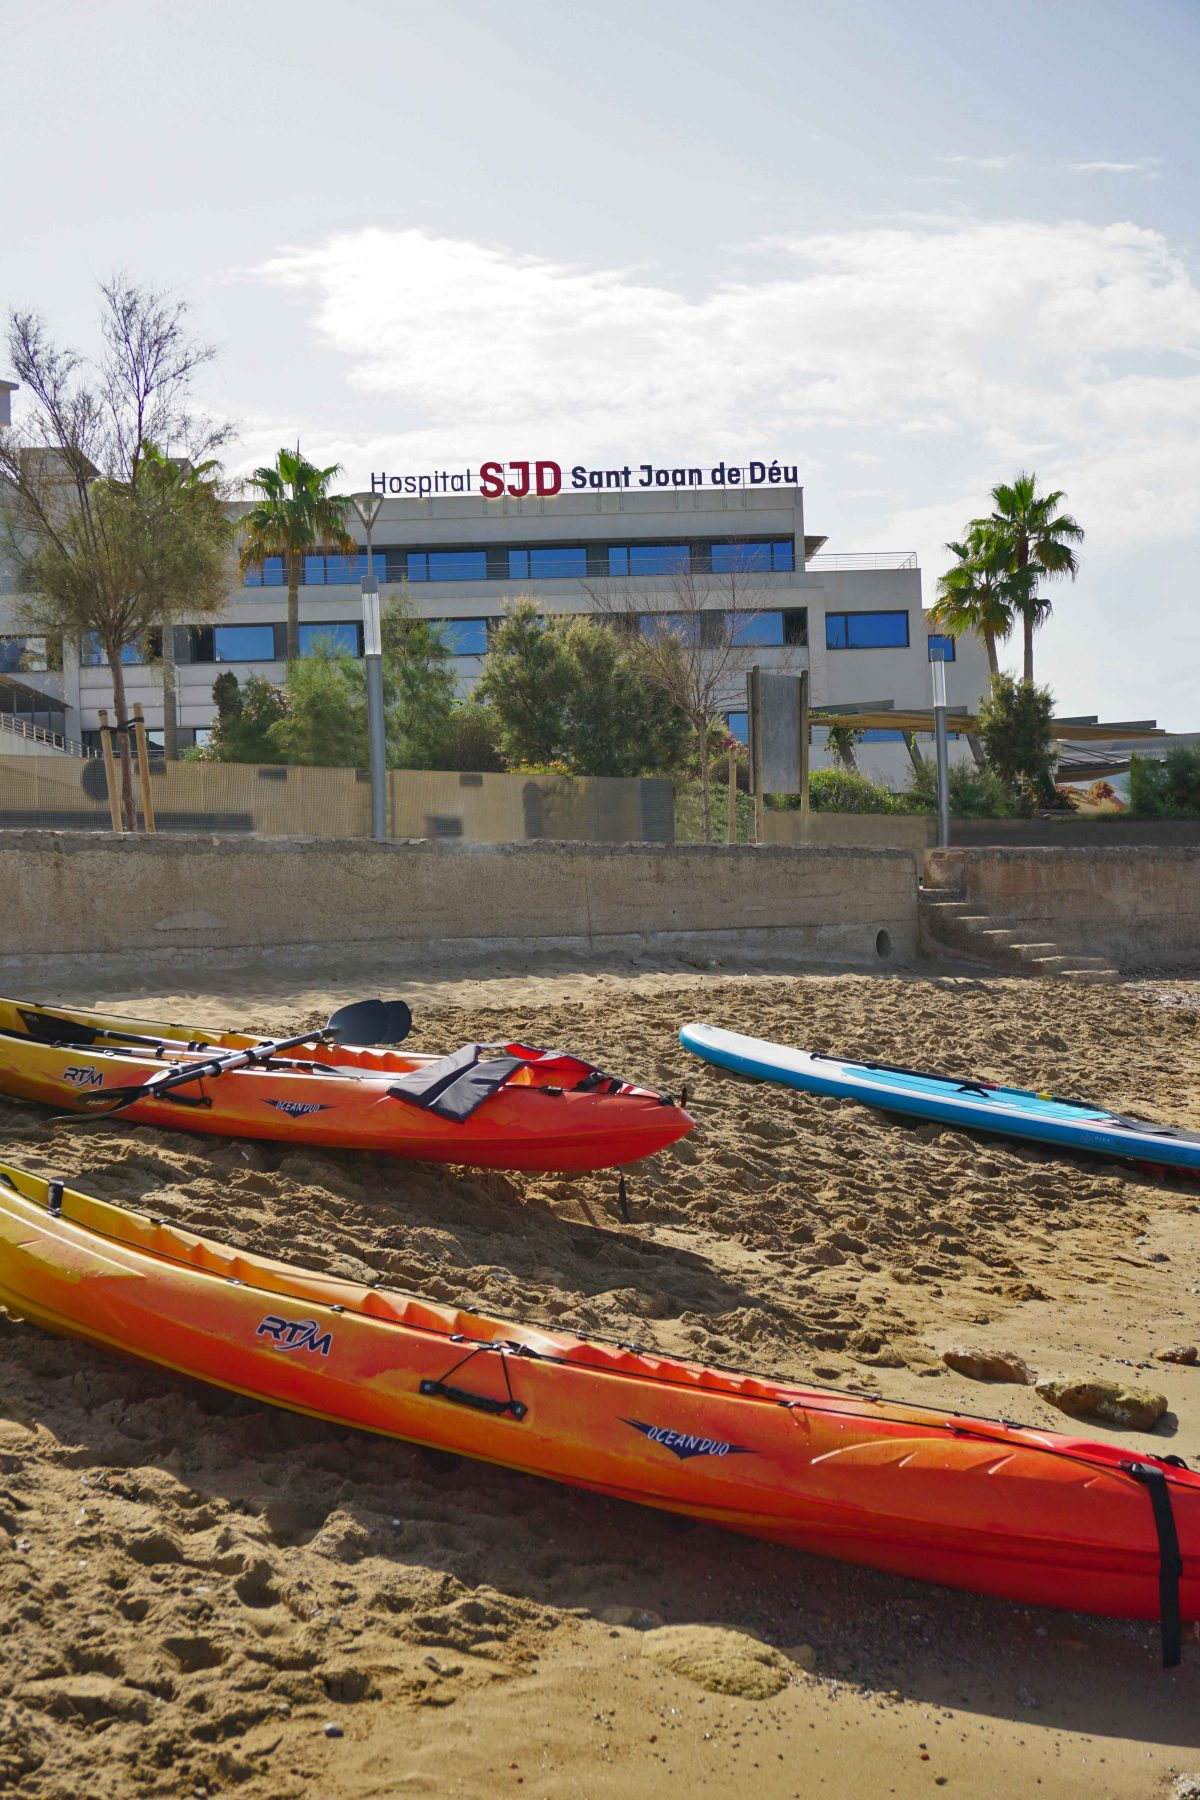 Kayak-y-Paddle-Surf-adaptado-PROA-16a-1200x1800.jpg